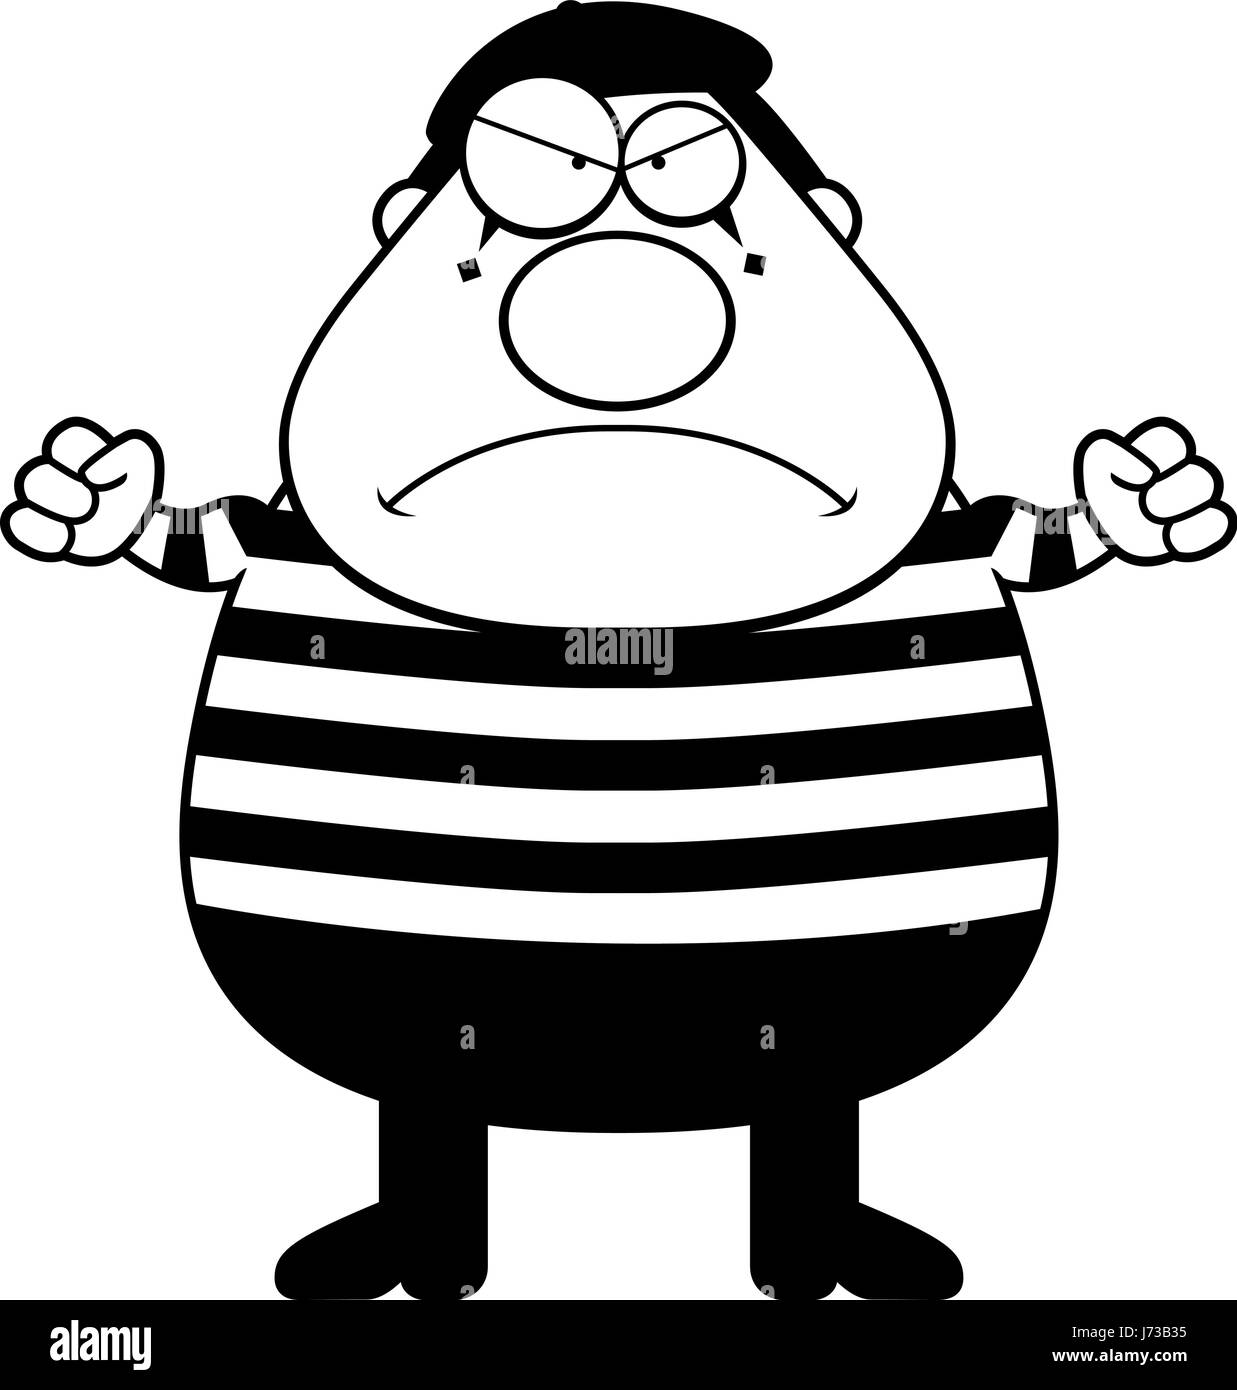 A cartoon illustration of a mime with an angry expression. - Stock Vector